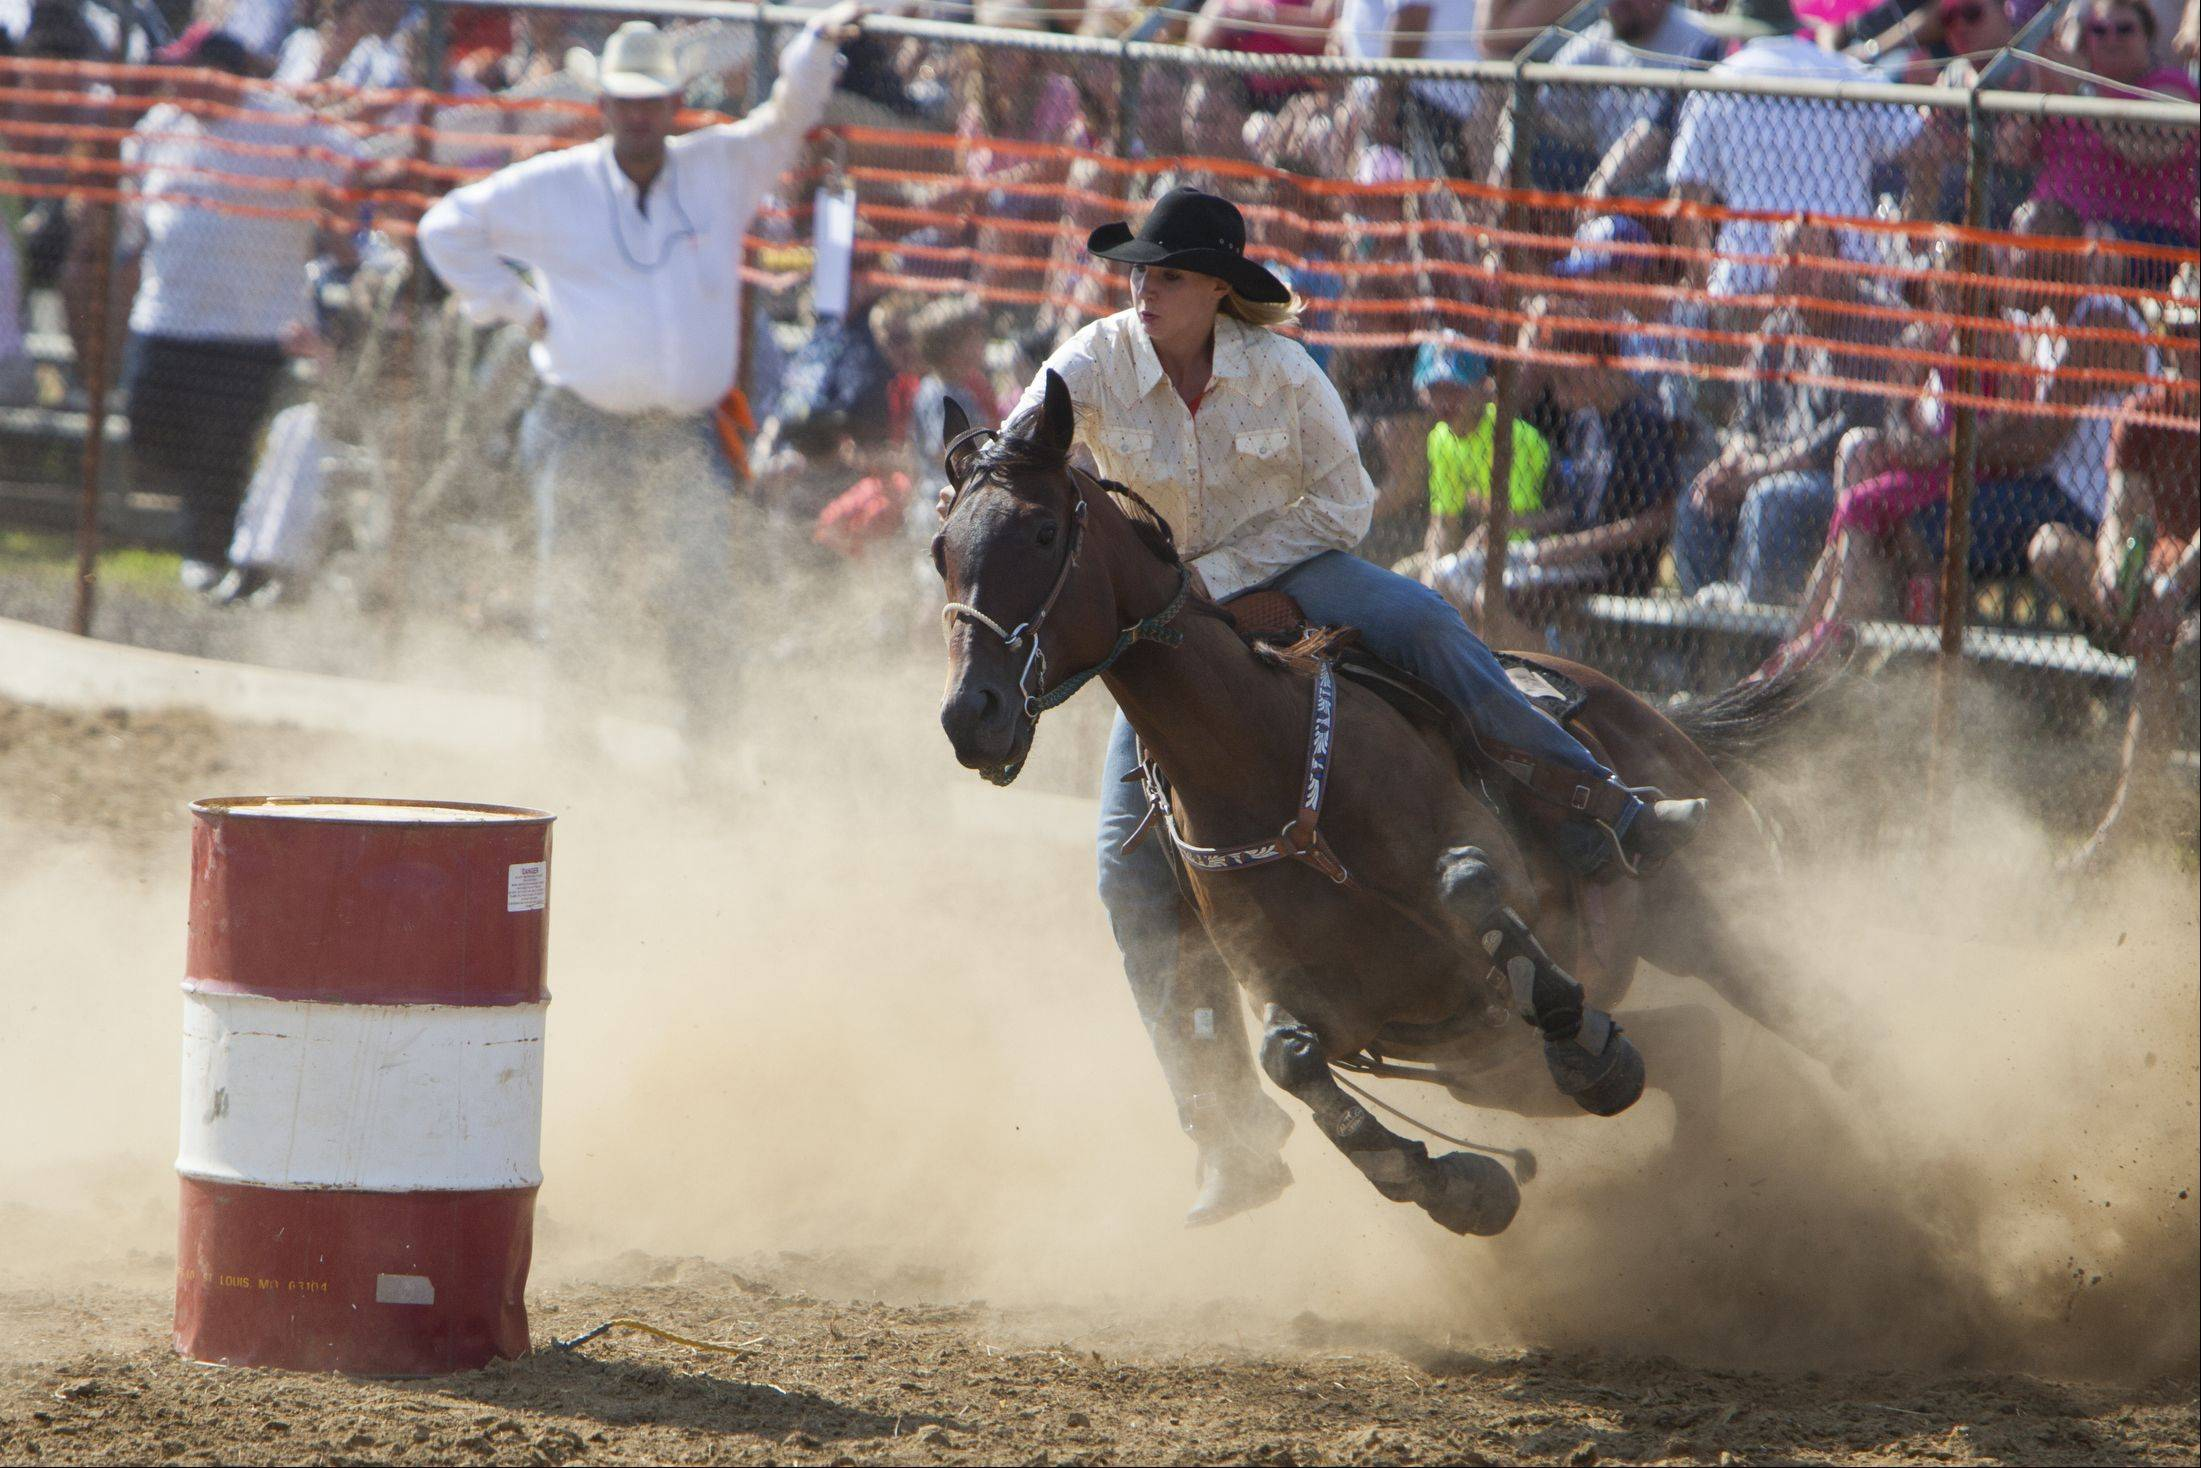 Jamie Gellman of Wauconda rounds a barrel during last year's Wauconda rodeo.